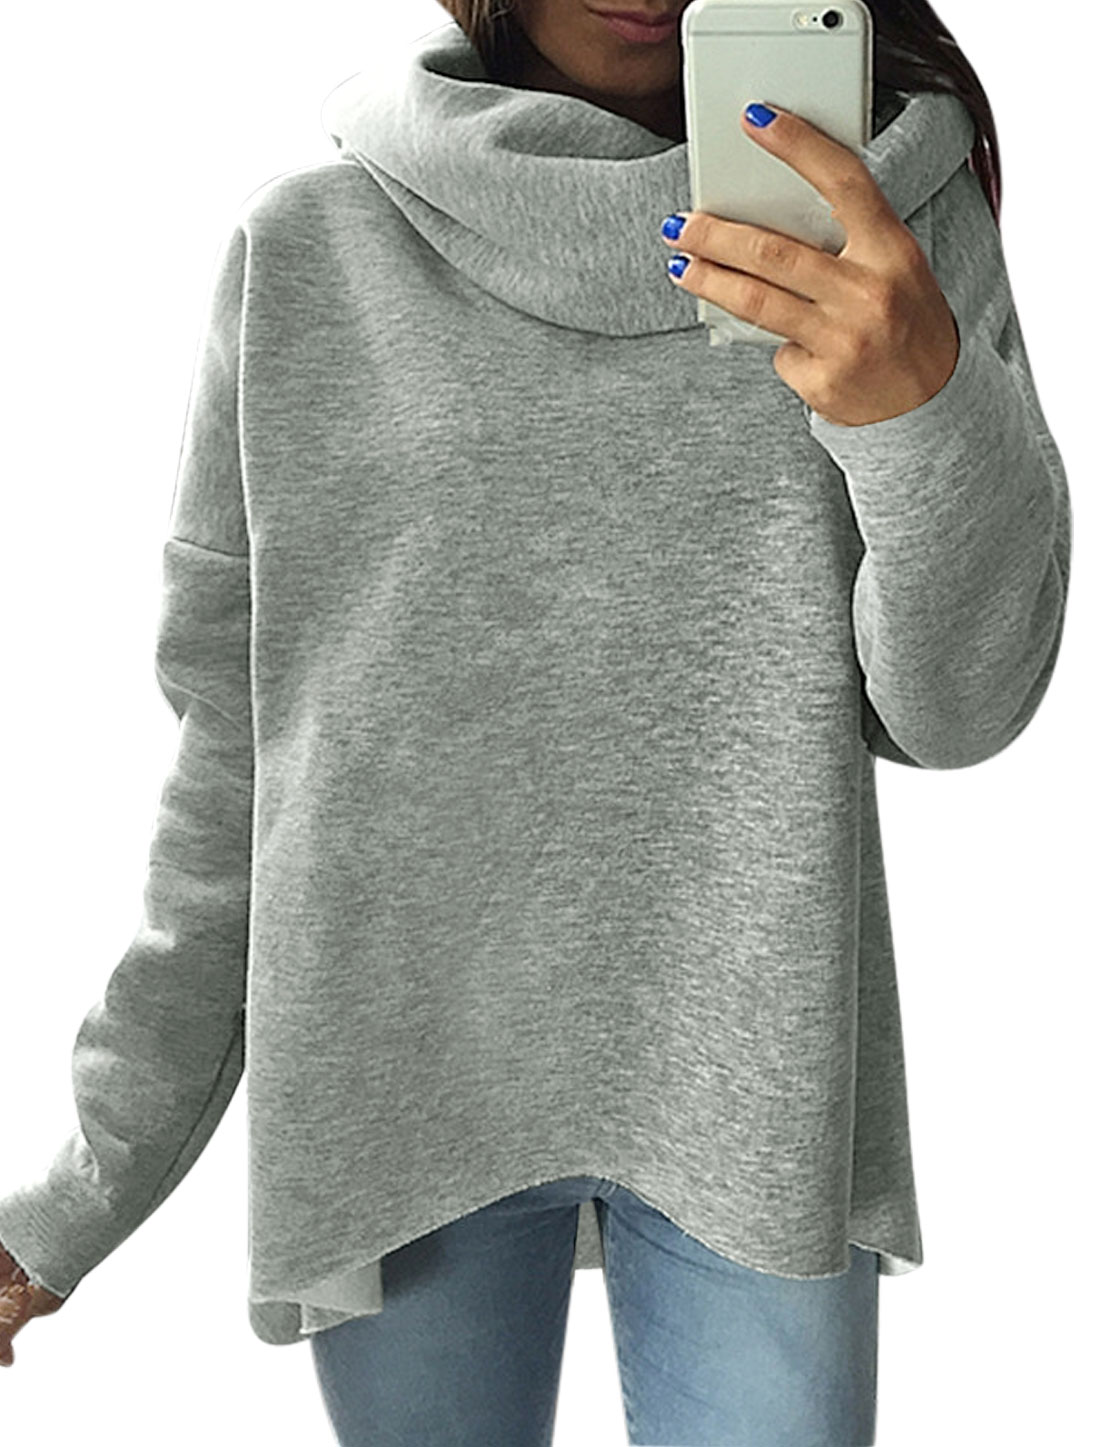 Women Cowl Neck Dolman Sleeves Hi-Lo Sweatshirt Gray S